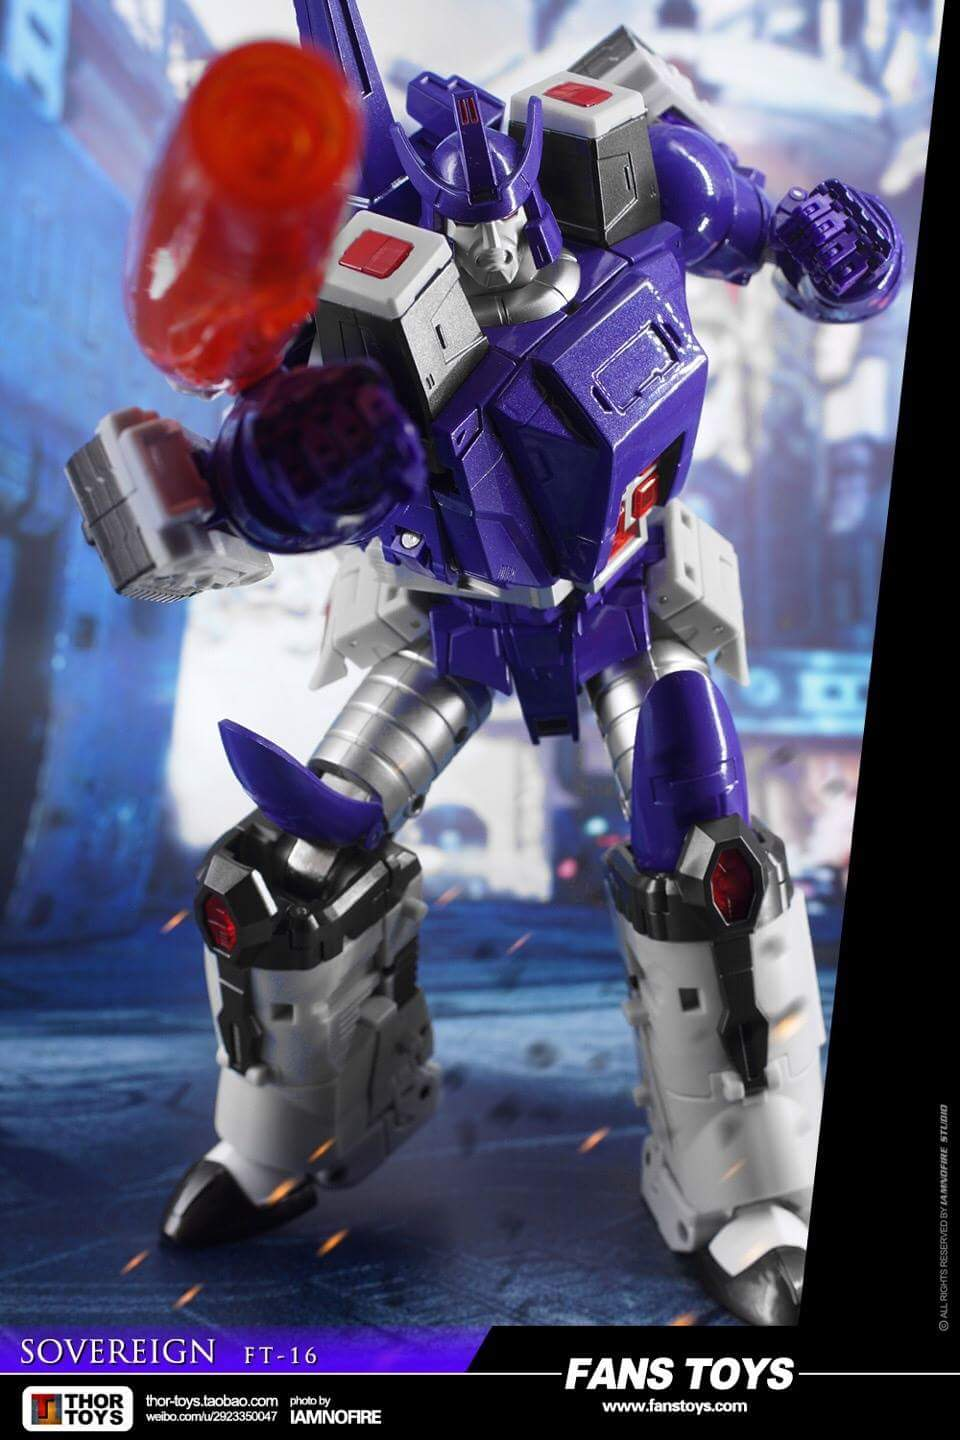 [Fanstoys] Produit Tiers - Jouet FT-16 Sovereign - aka Galvatron - Page 3 VYRvlUfO